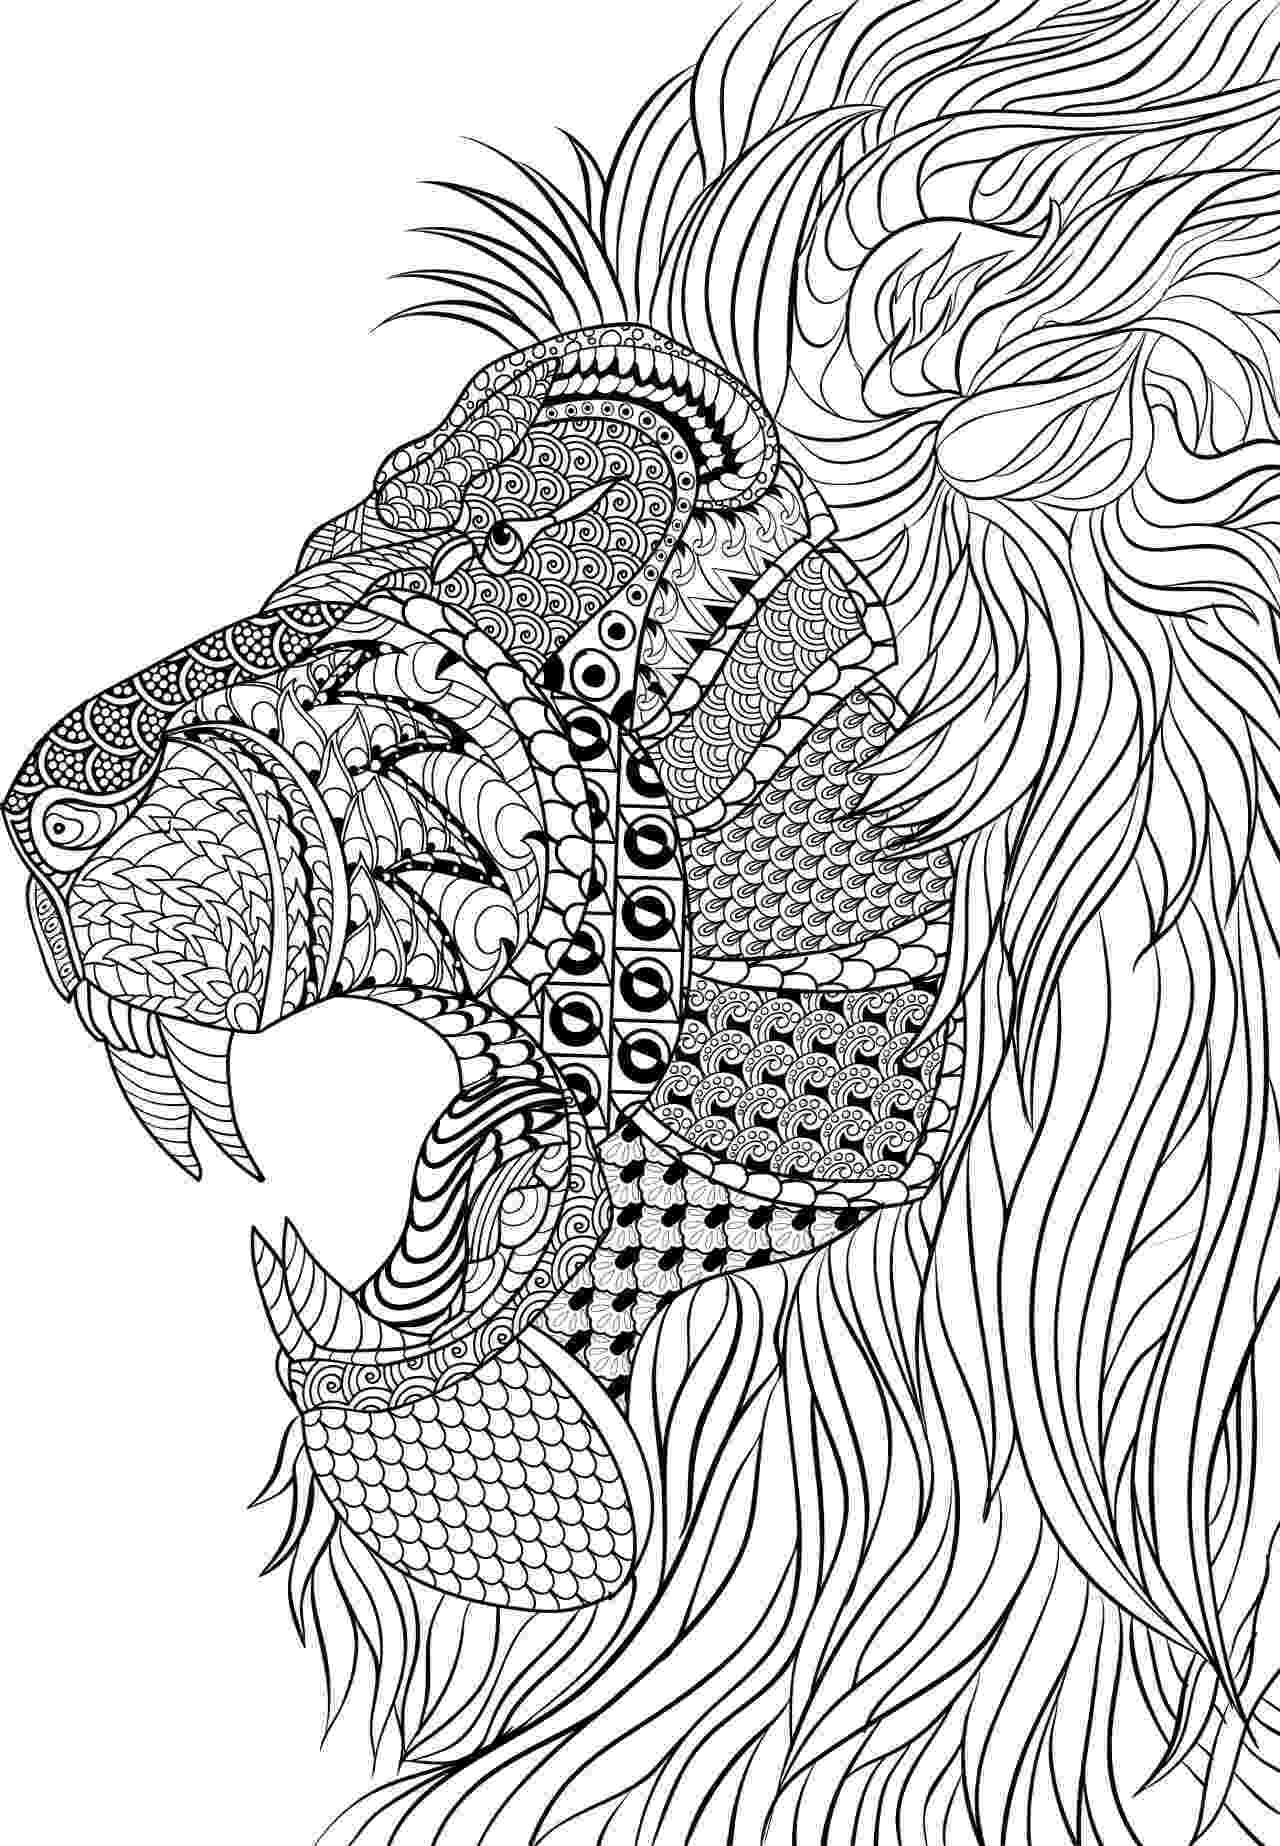 hard animal coloring pages coloring pages for adults difficult animals 4 coloring animal hard coloring pages